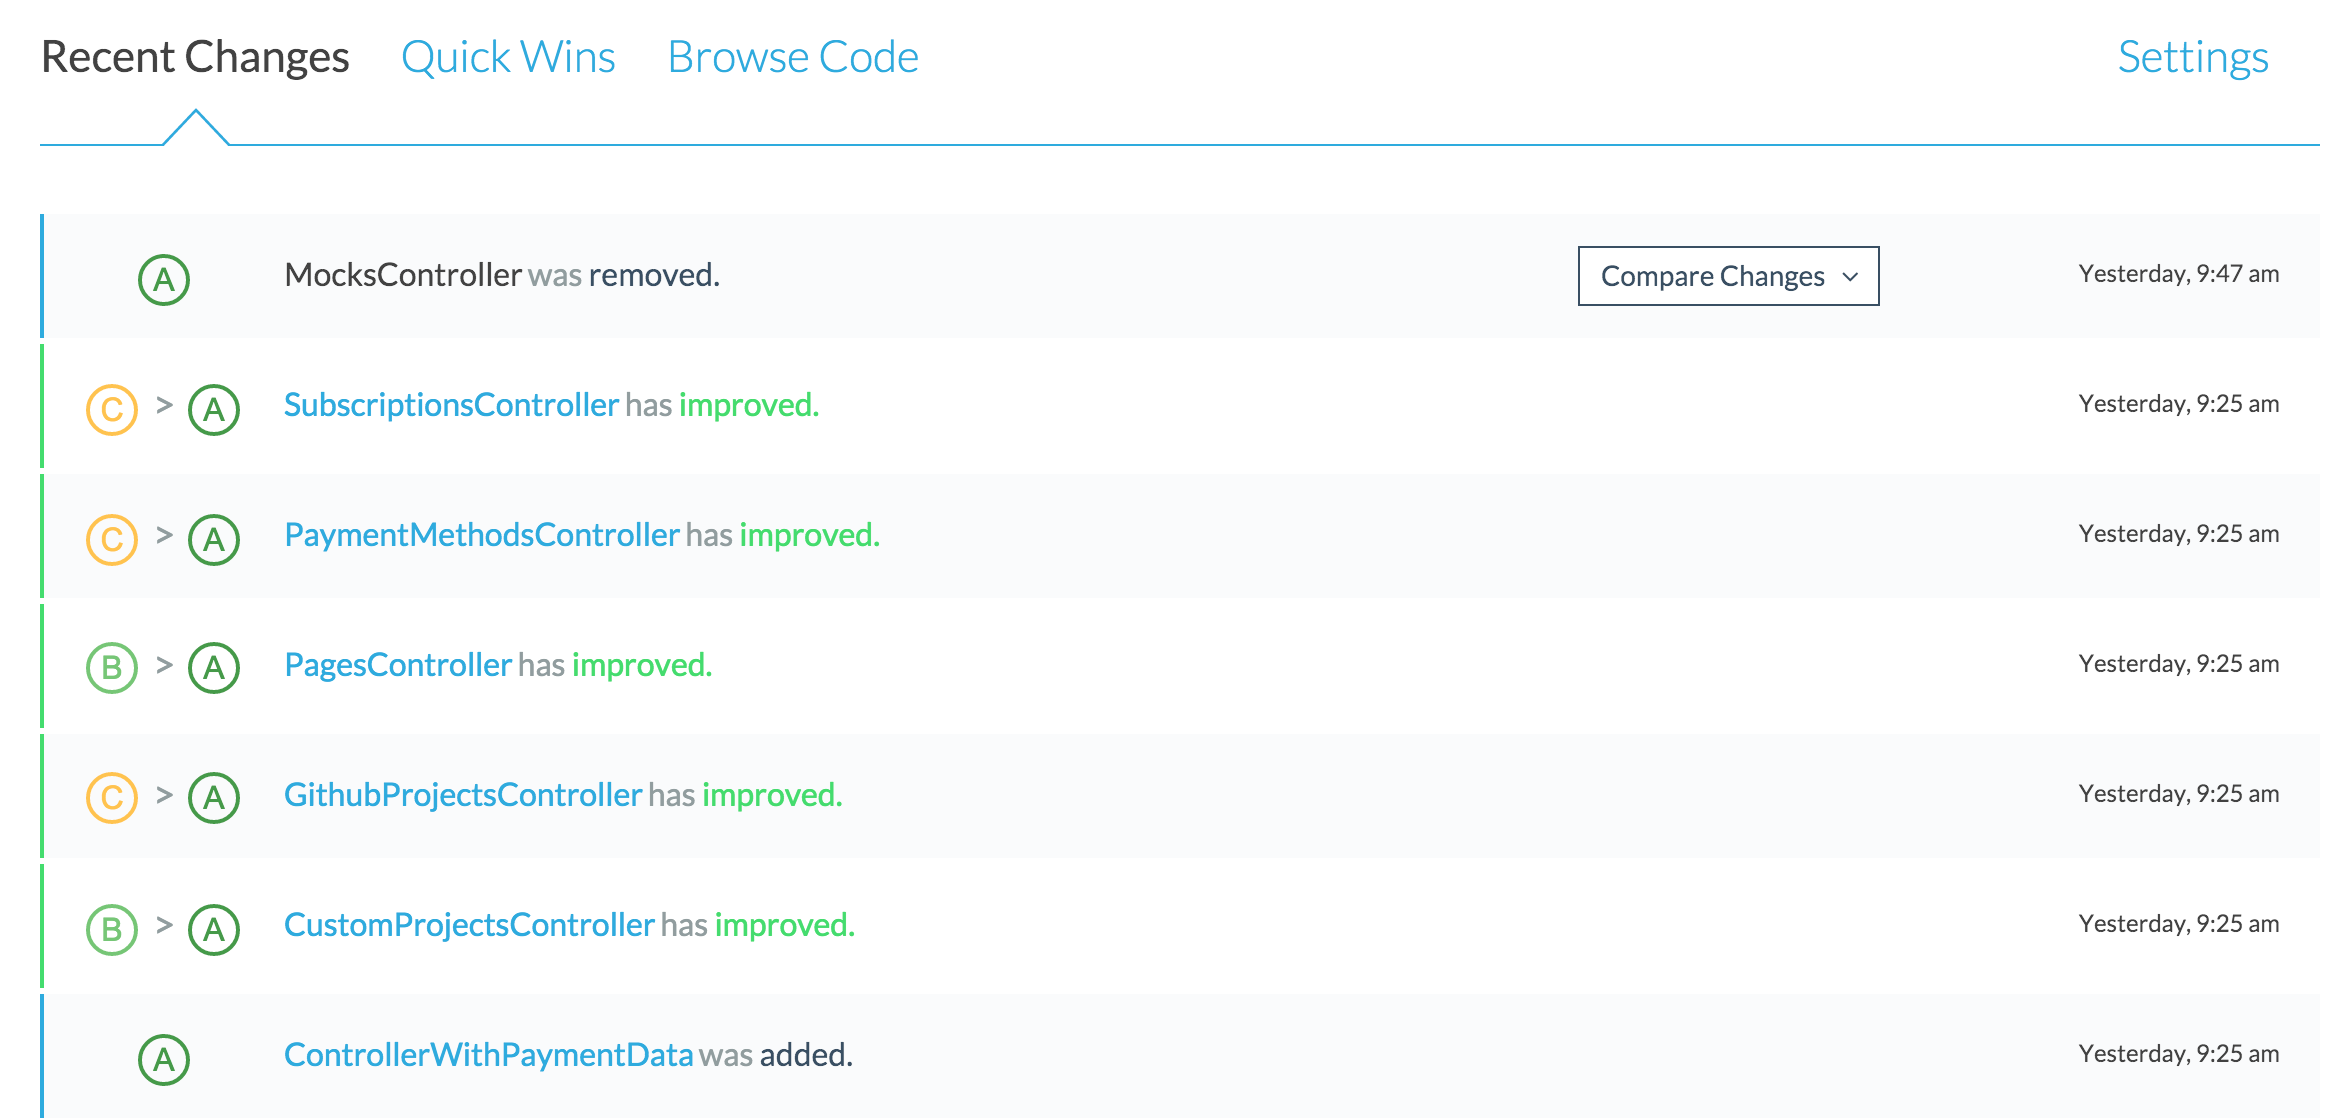 Recent changes for our frontend app